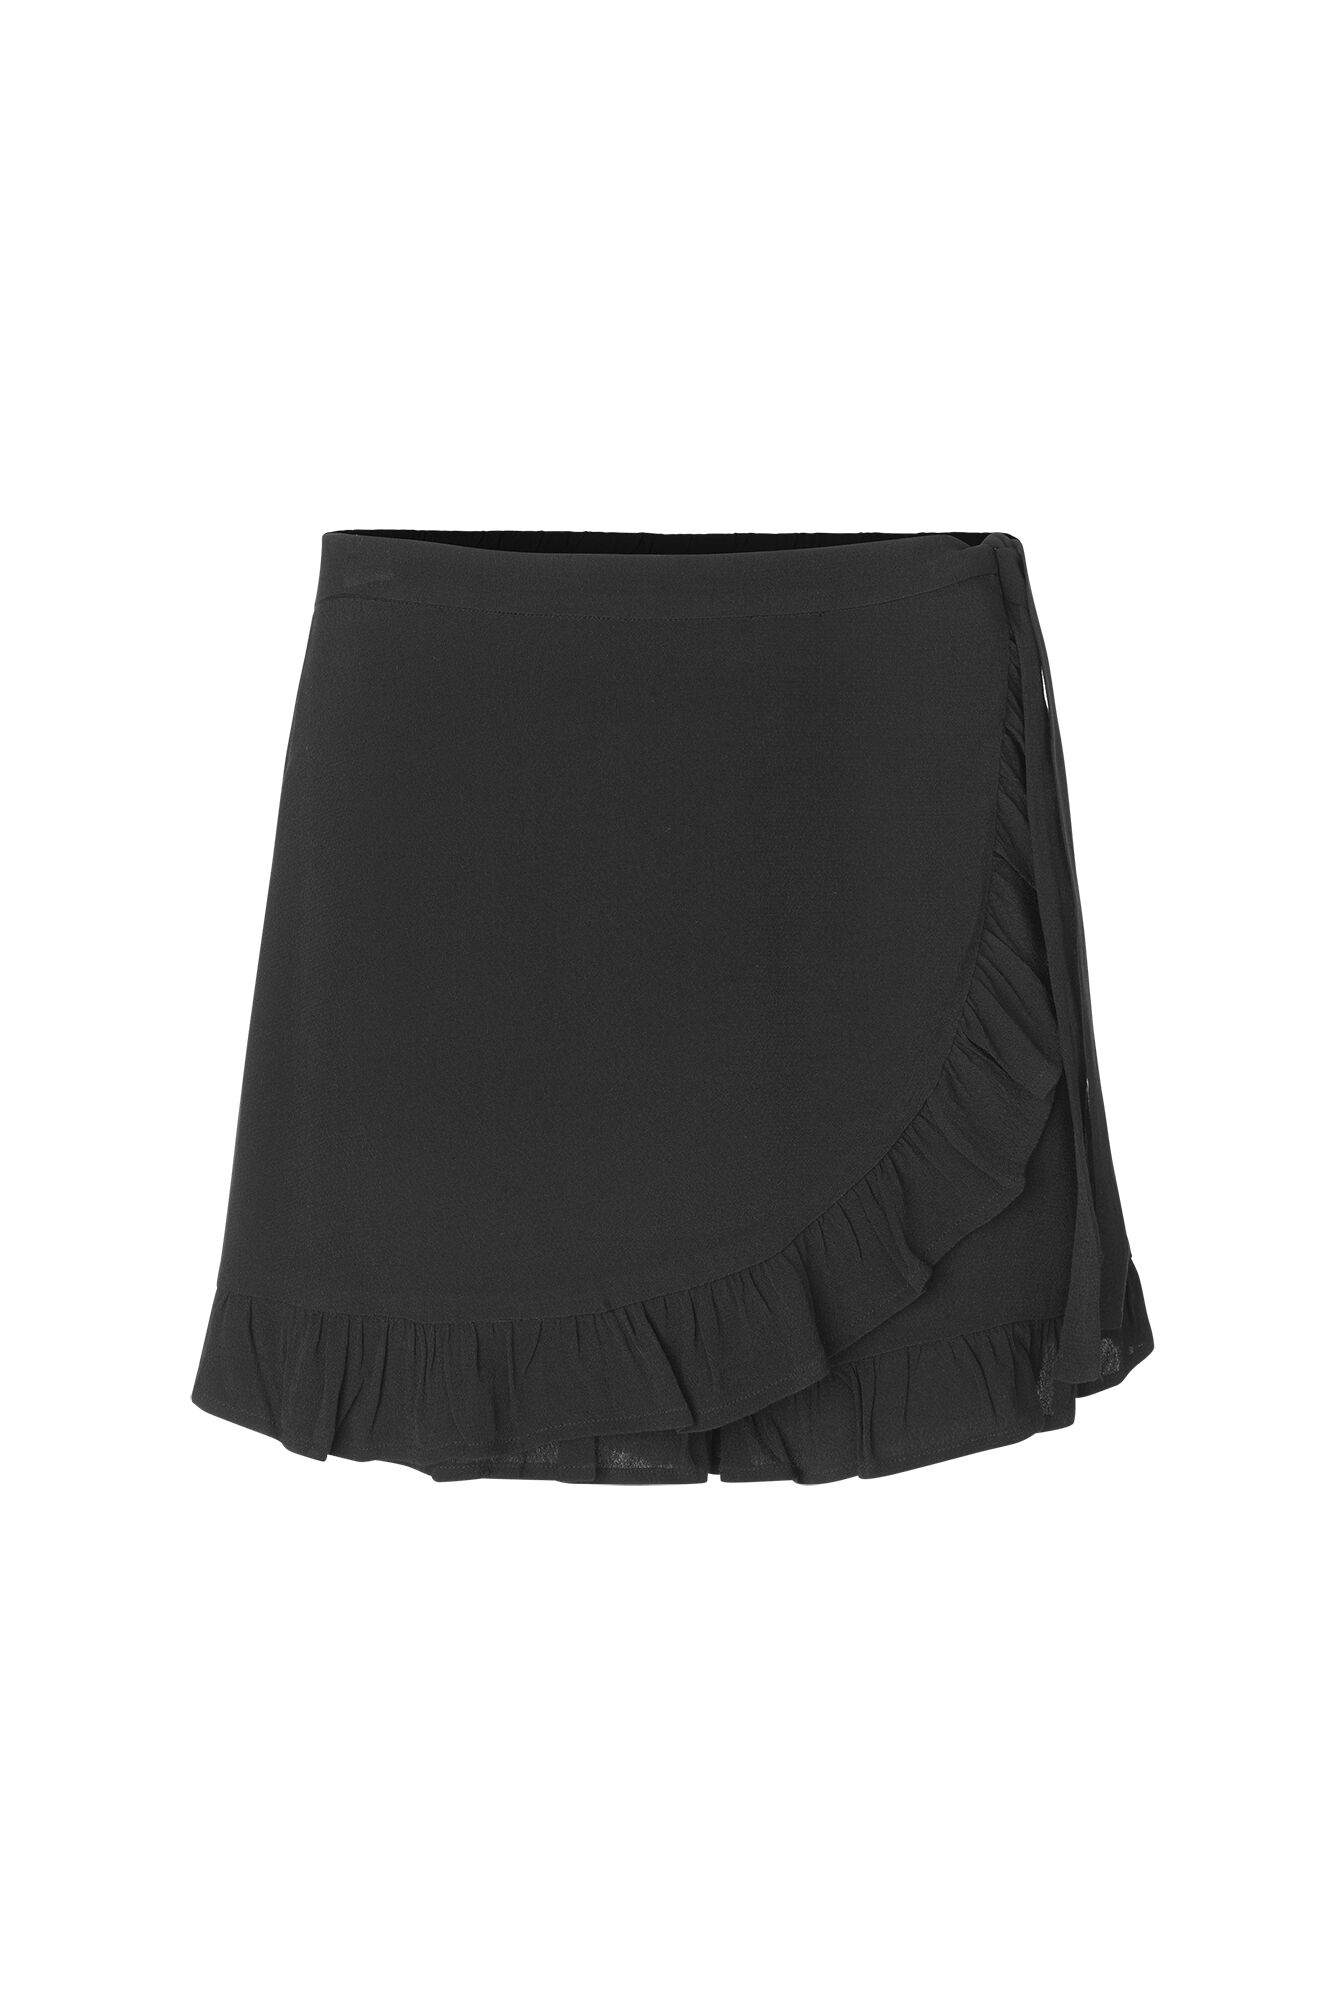 ENCHILI SHORTS 6257, BLACK